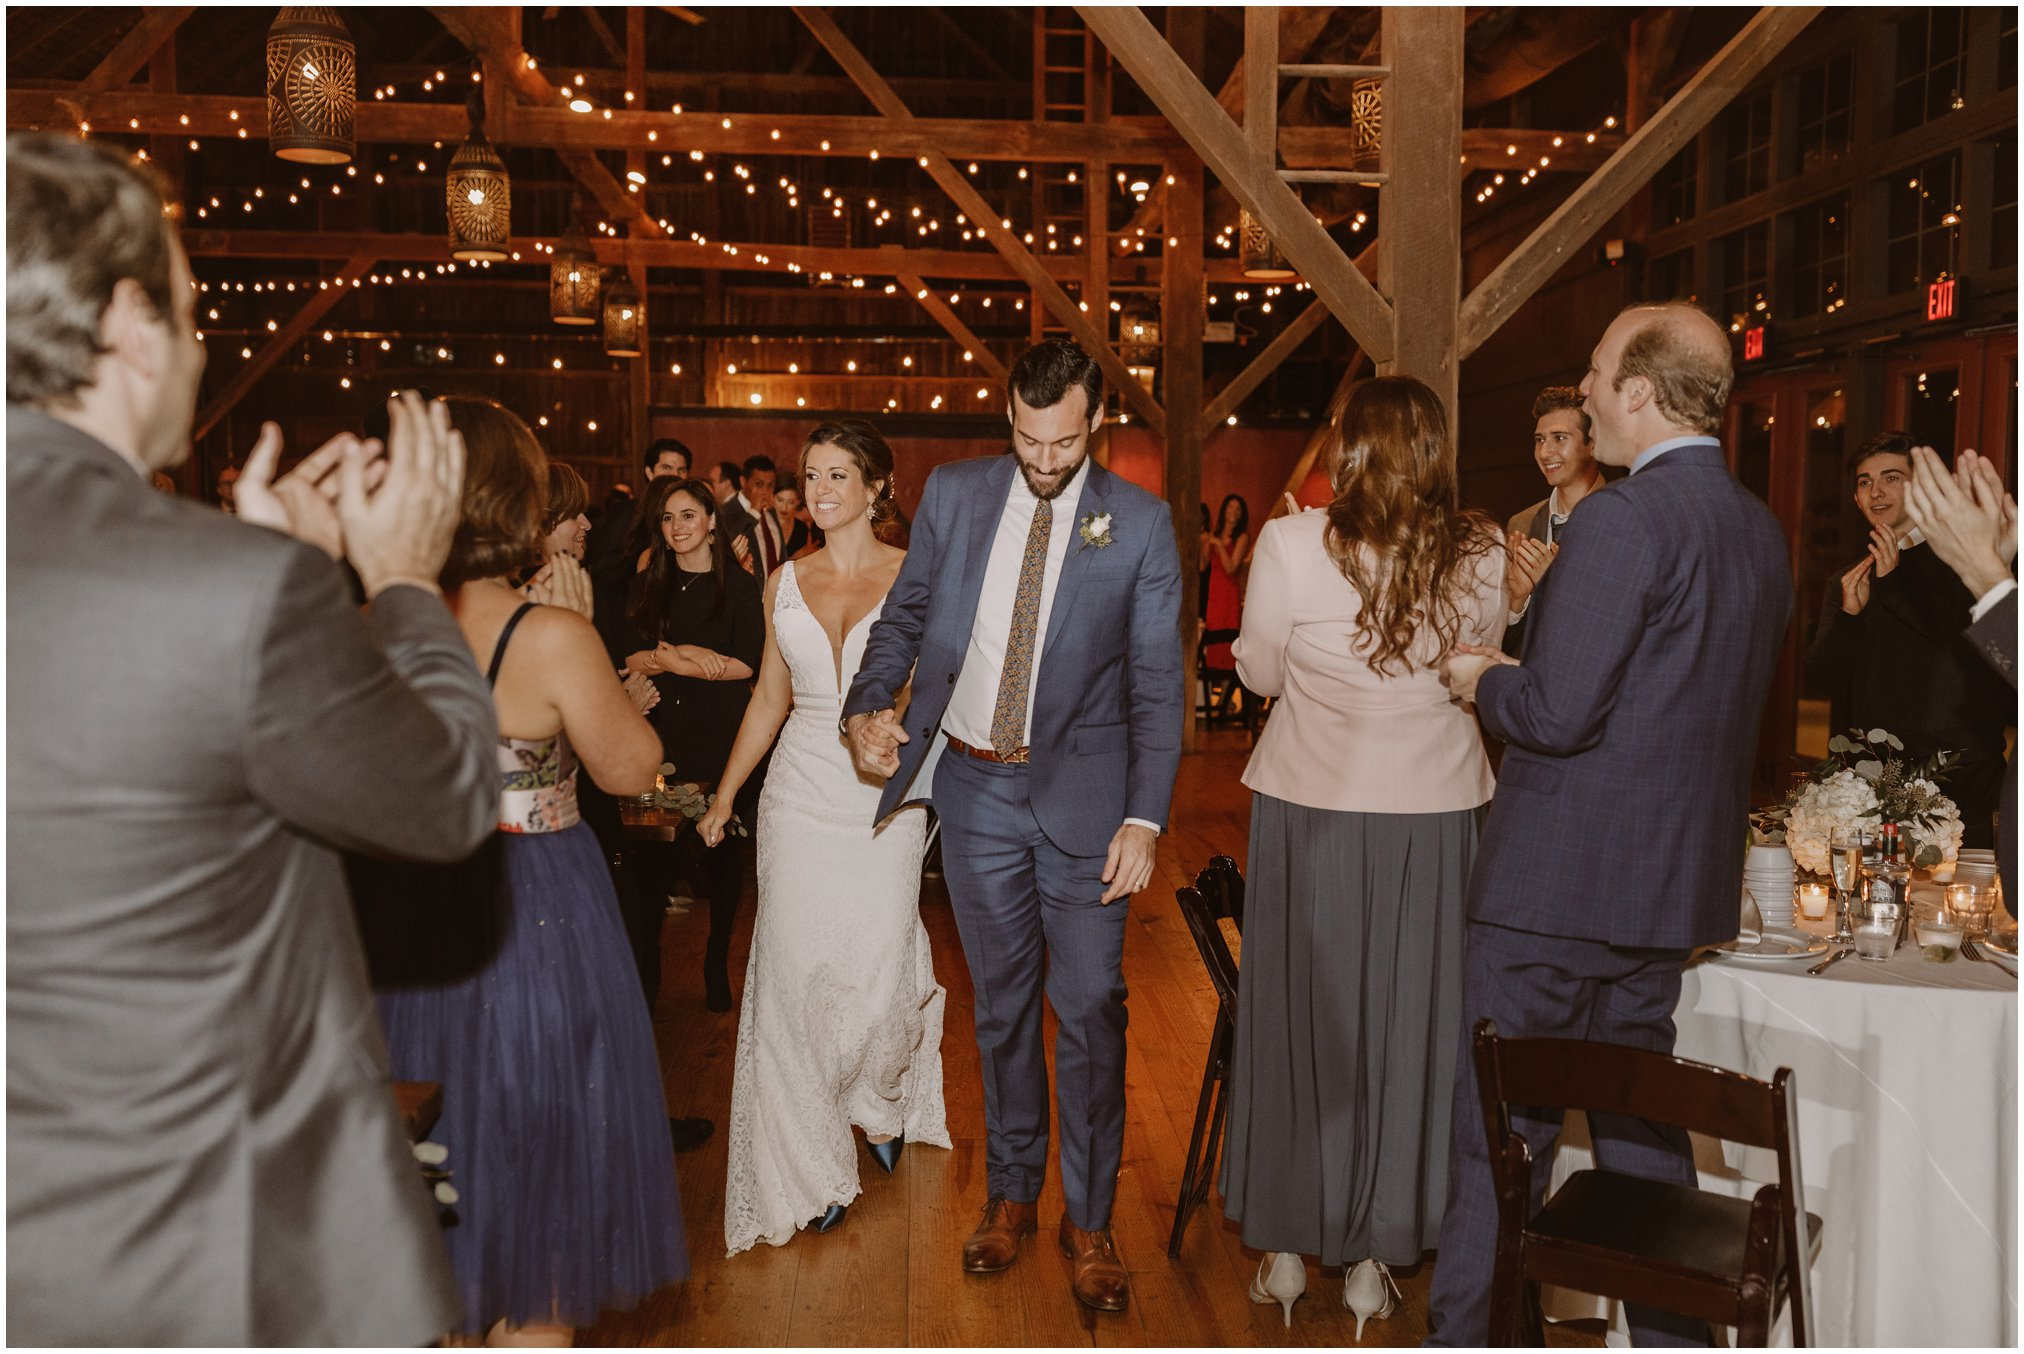 Riverside on the Potomac wedding barn reception with string lights